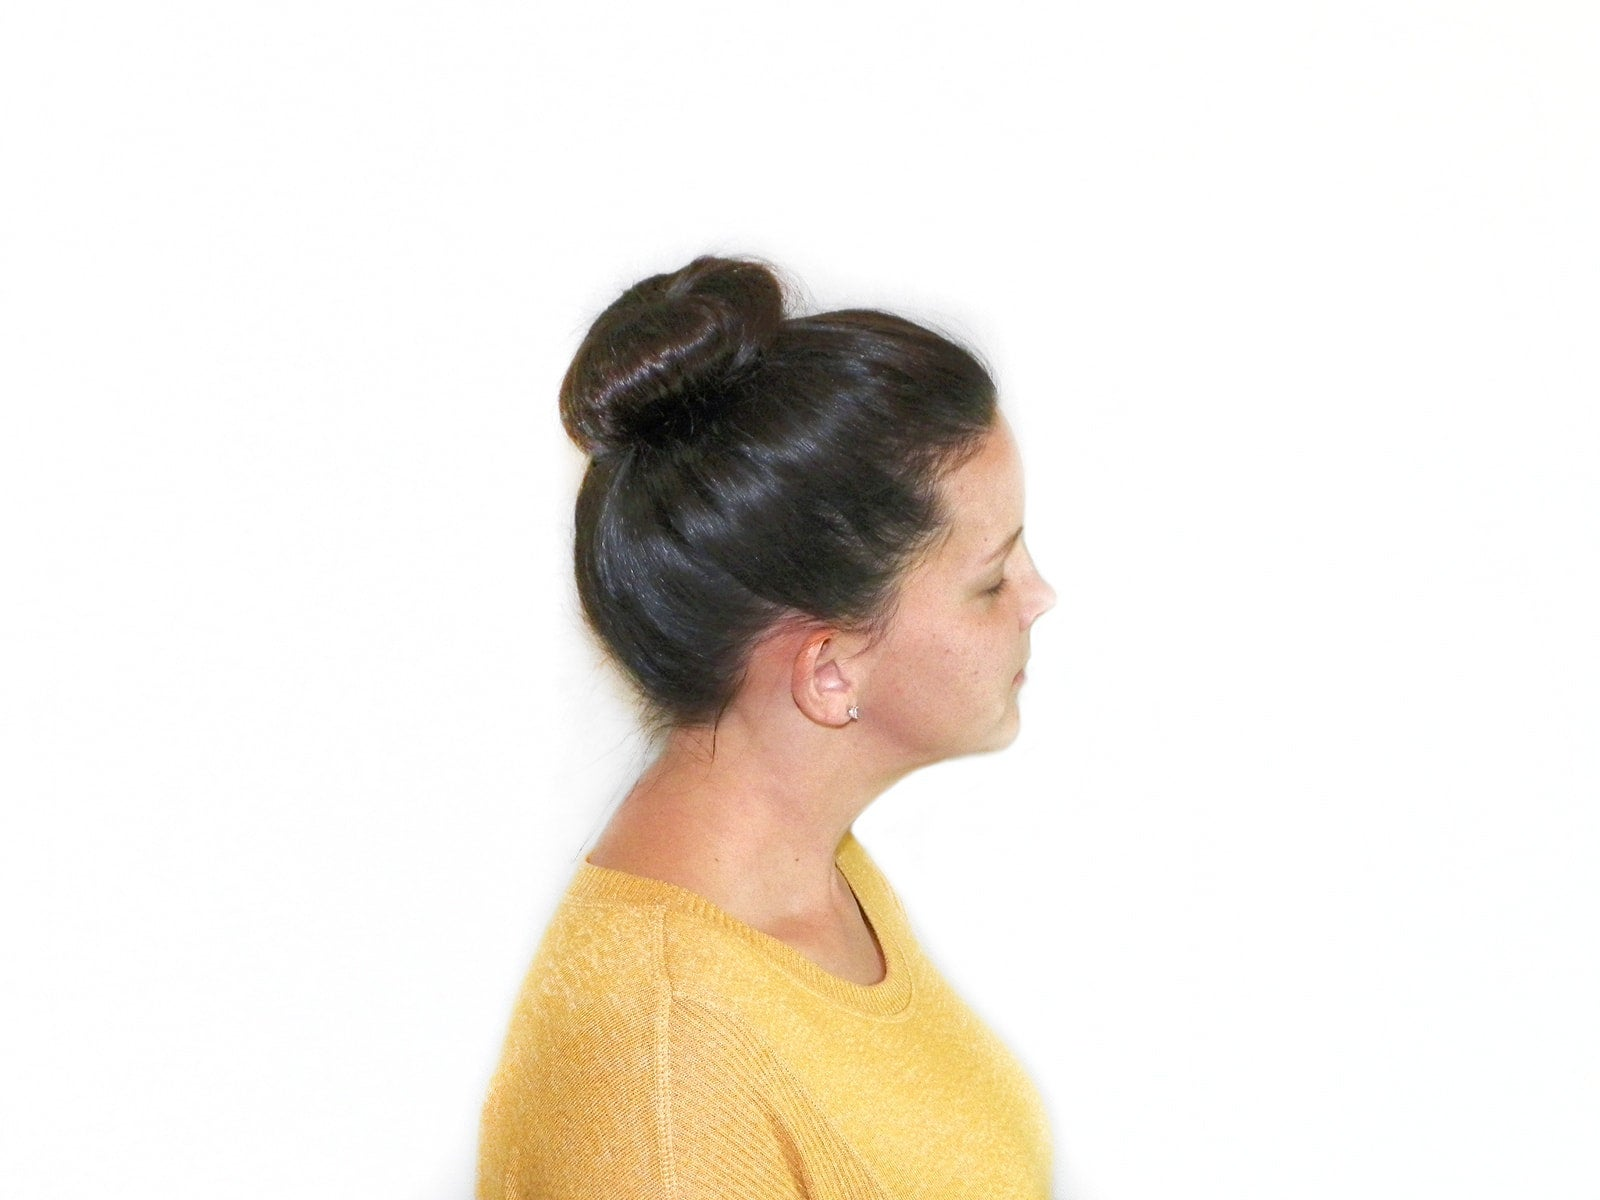 Sunflower Gold Hair Bun - Hair Donut - Hair trend - 1 Inch, extra long - My Easy Curls